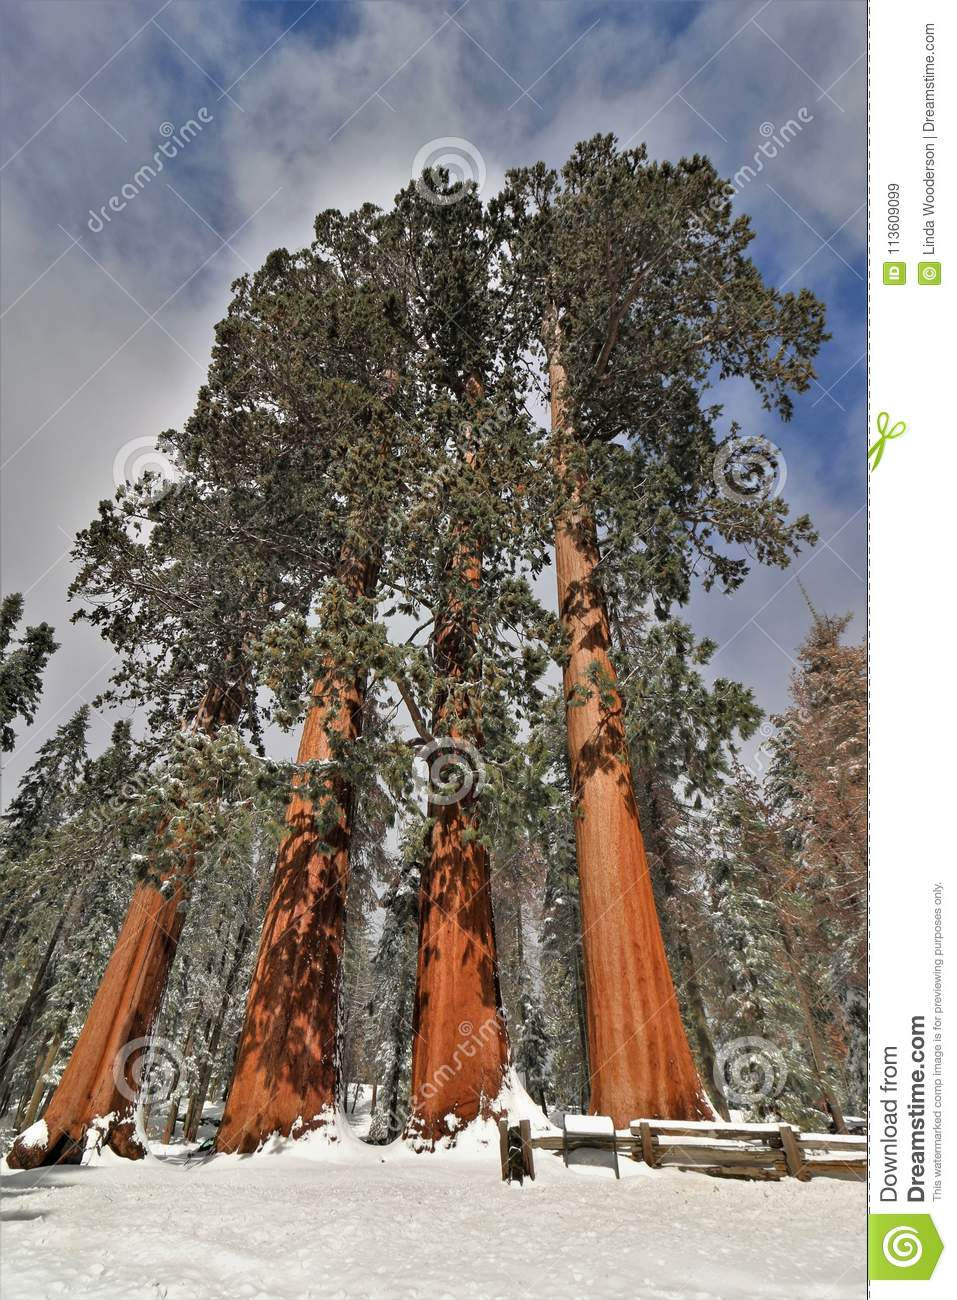 Snow covered large sequoia redwood trees called The Four Sisters in Sequoia National Park California